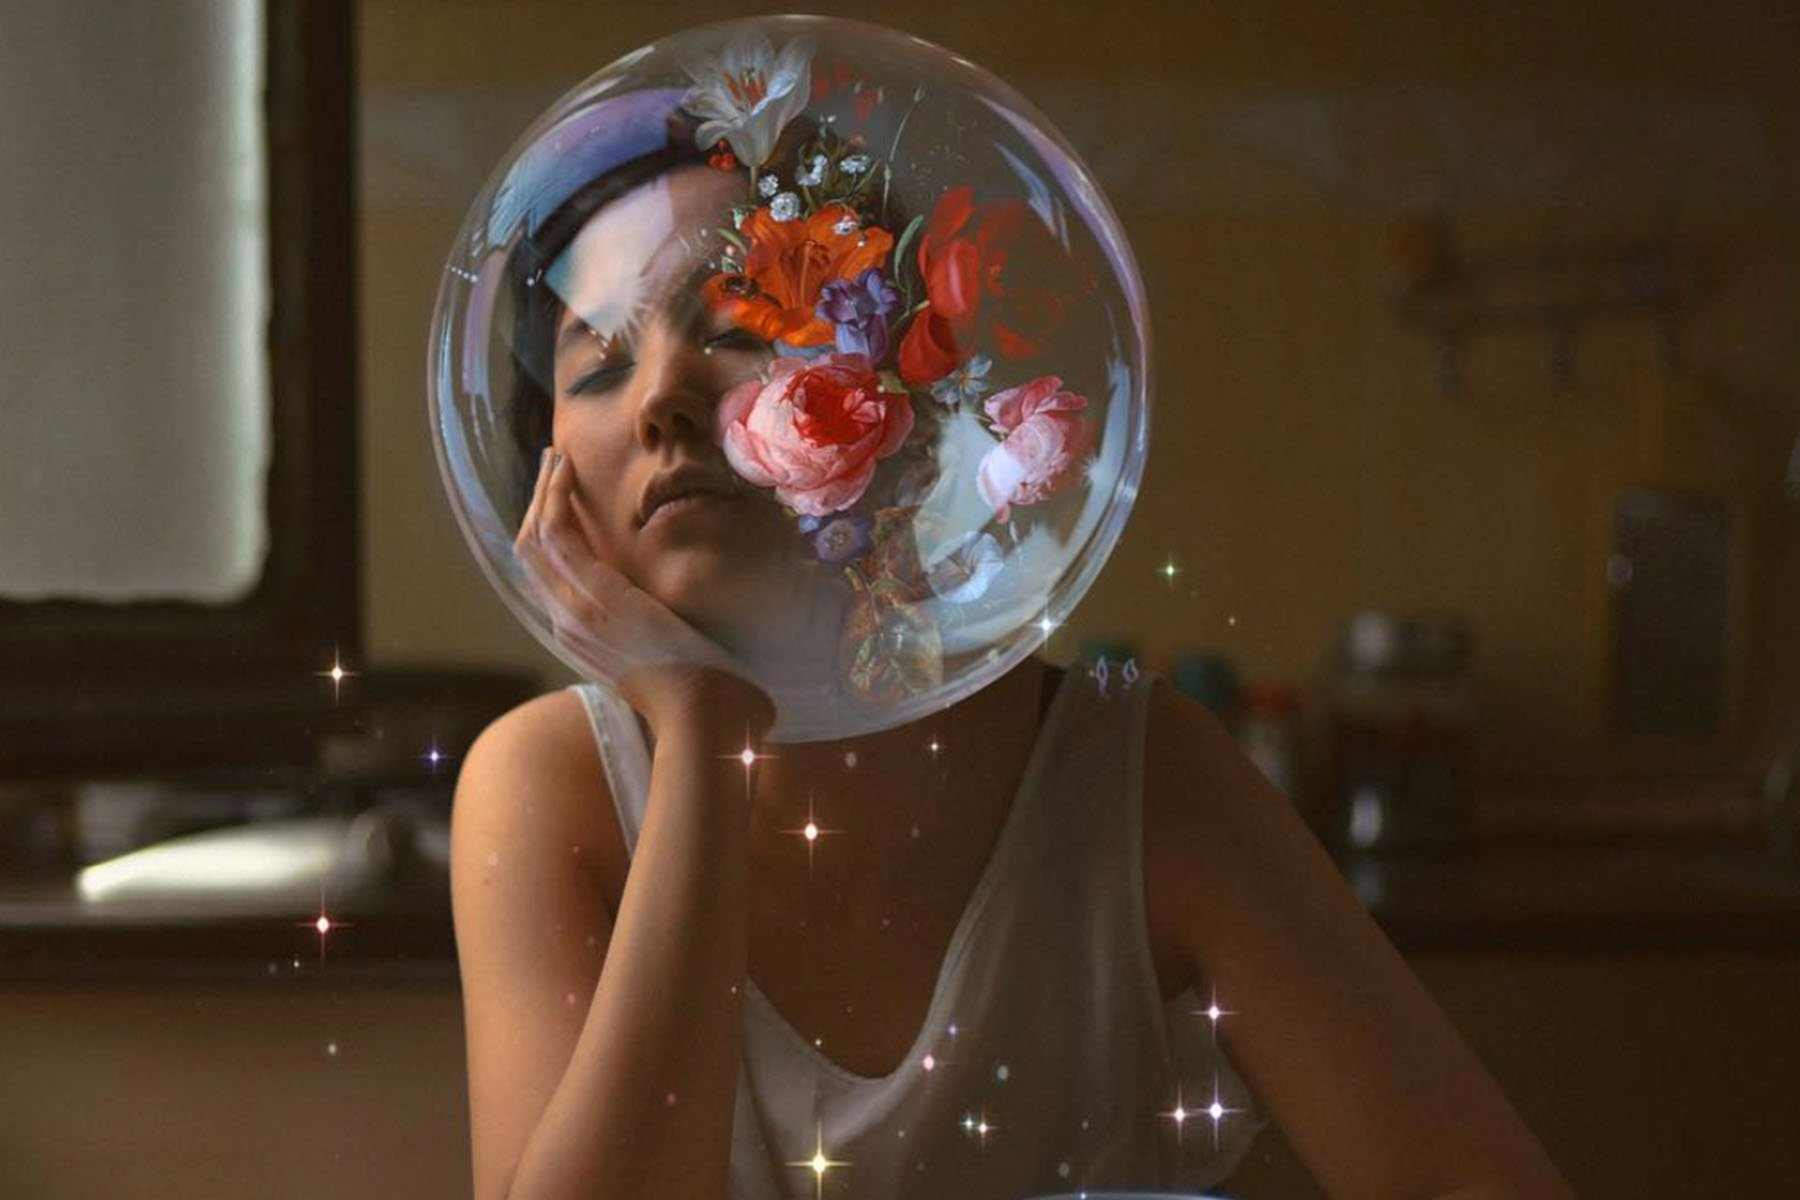 7 Magical Ways to Make Your Wishes Come True